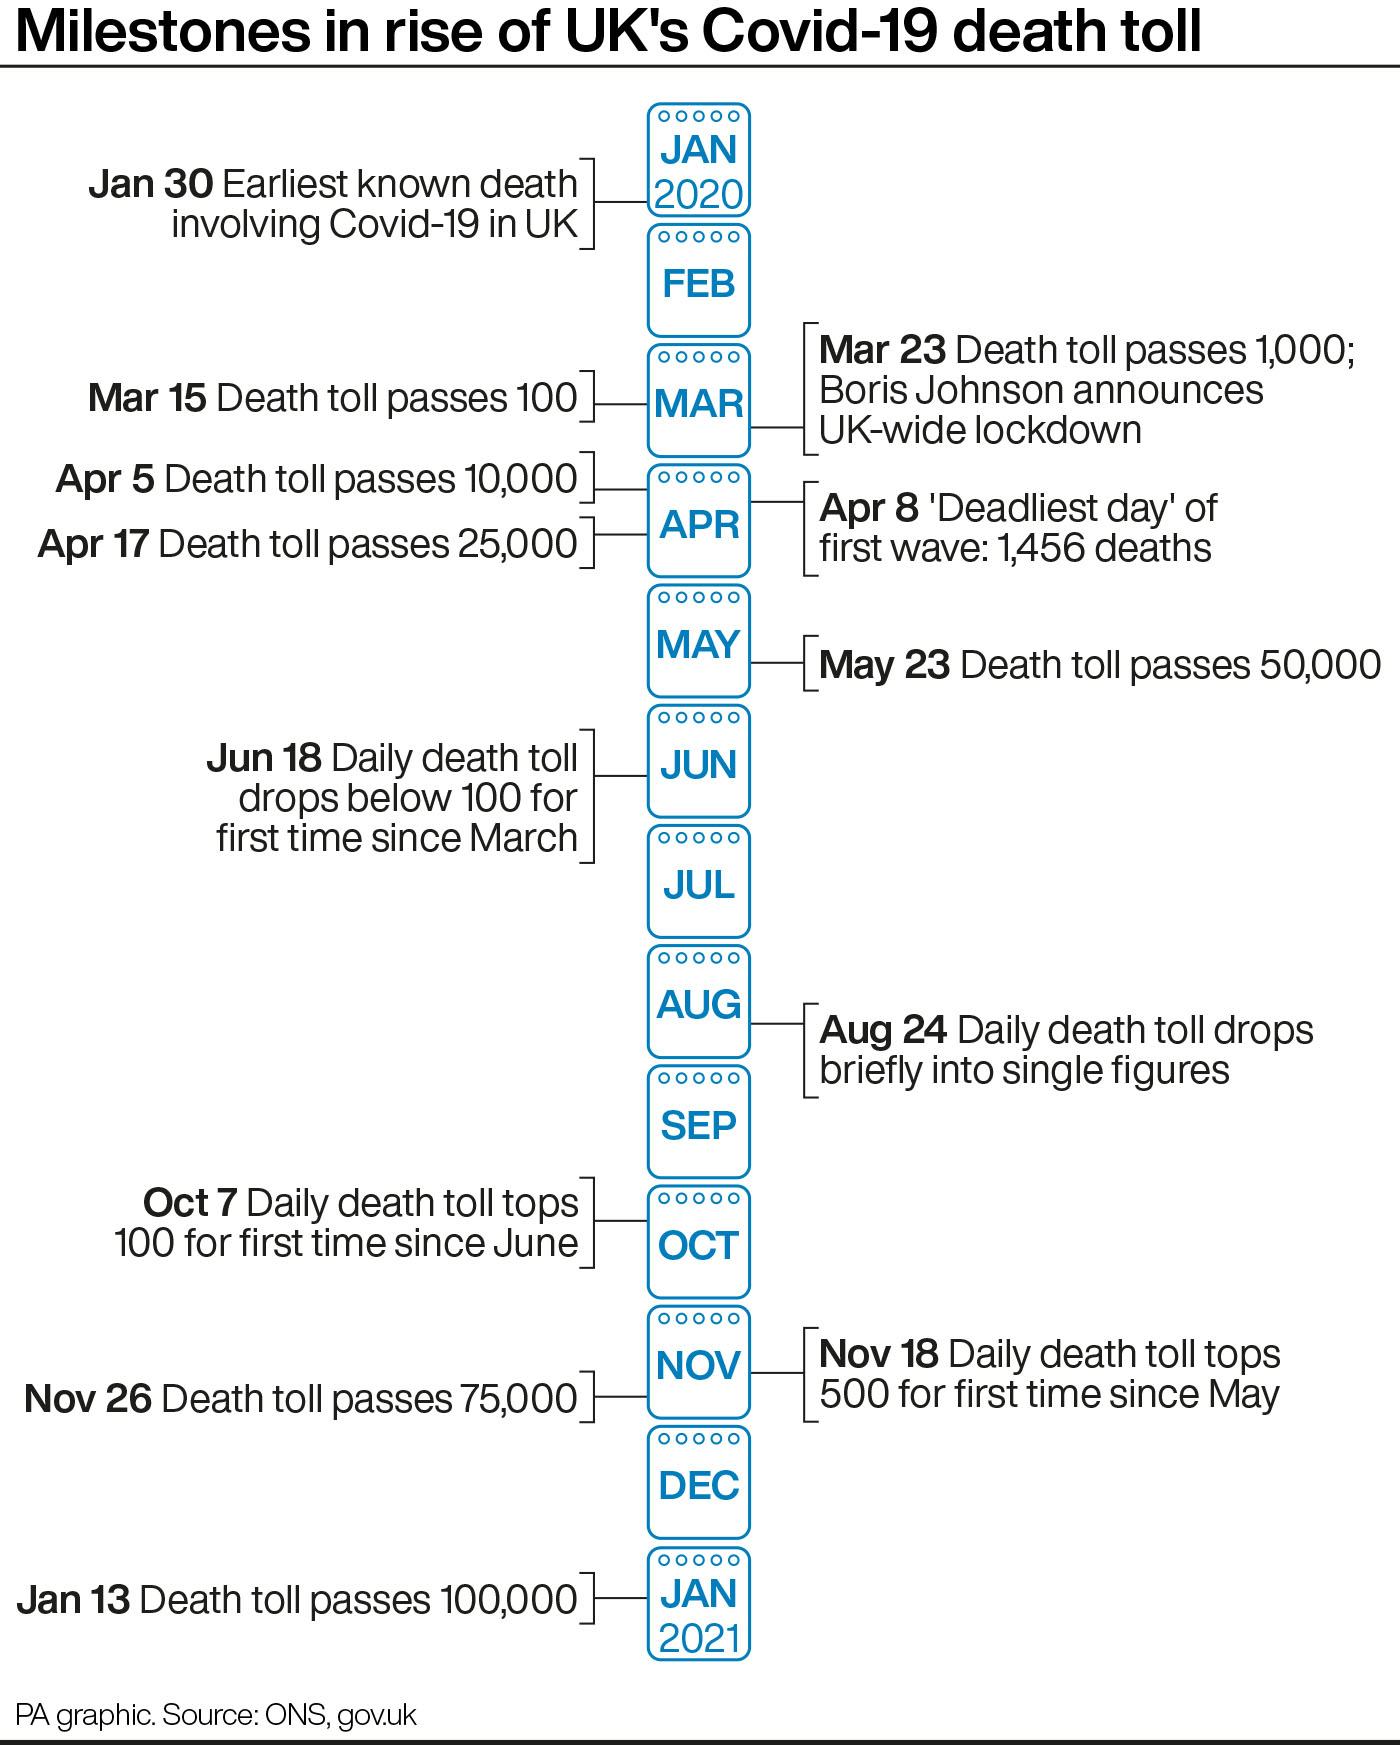 Milestones in the rise of the UK's Covid-19 death toll